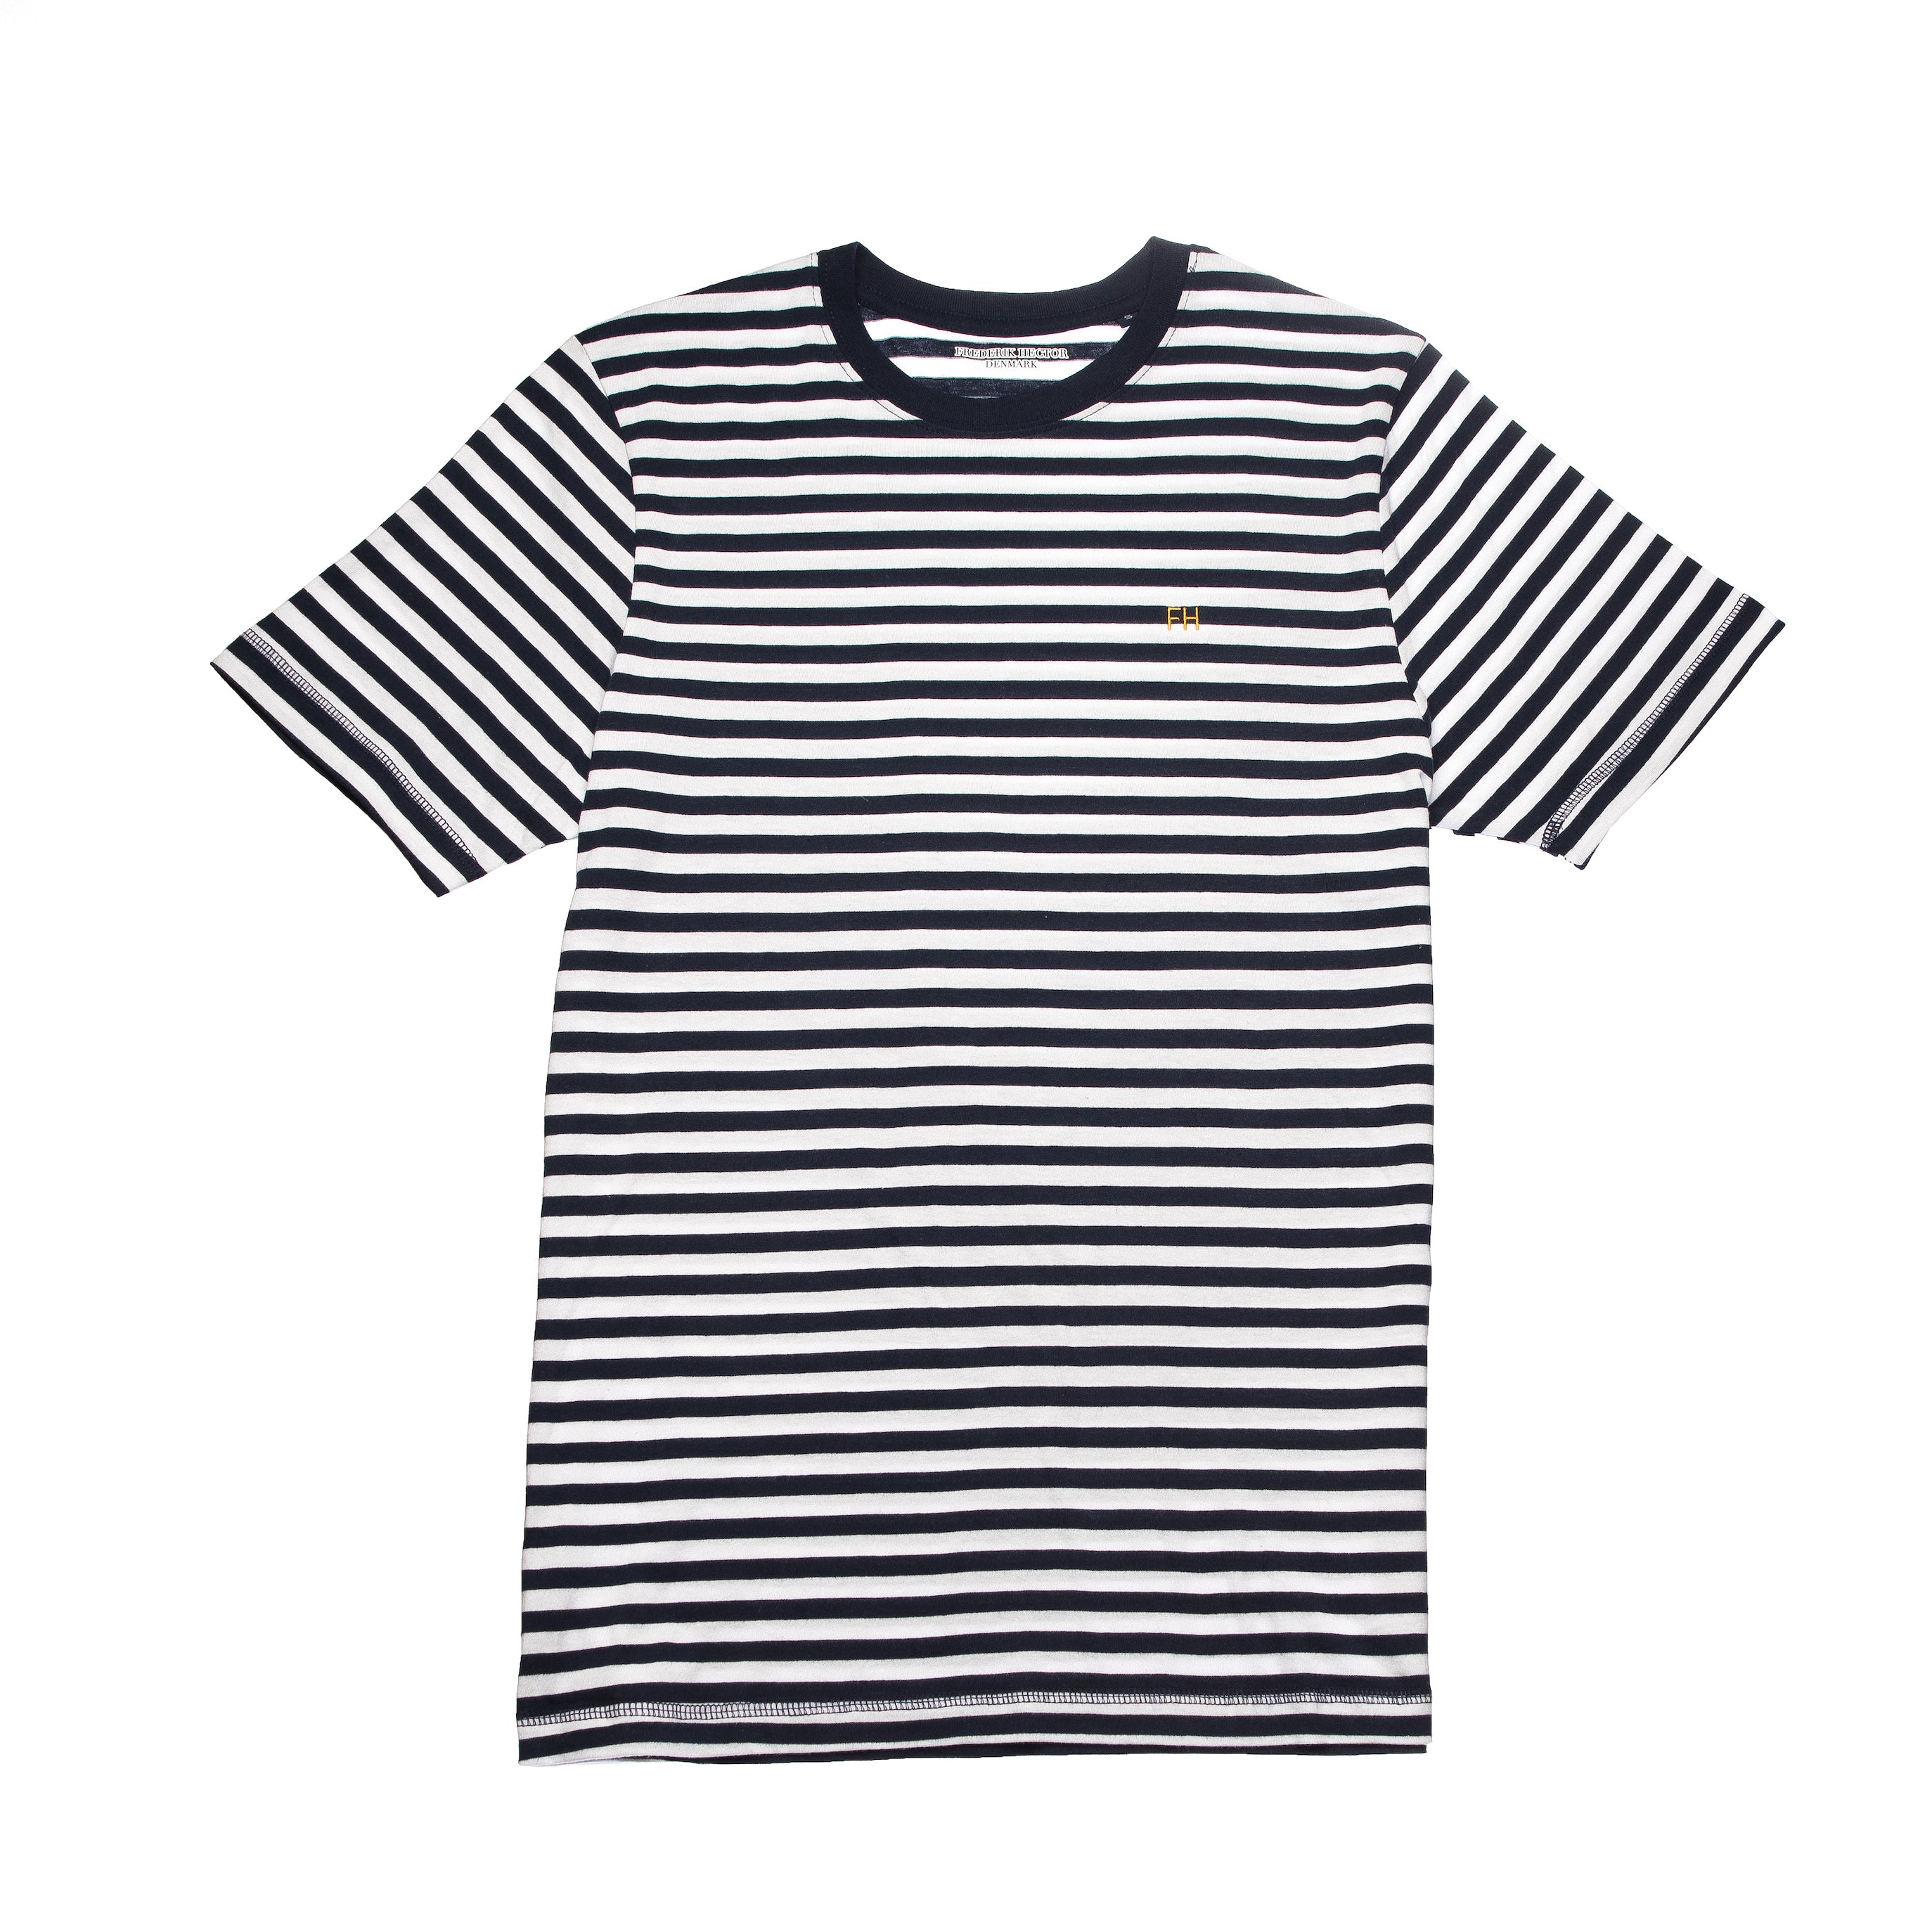 Blue & White Striped T-Shirt